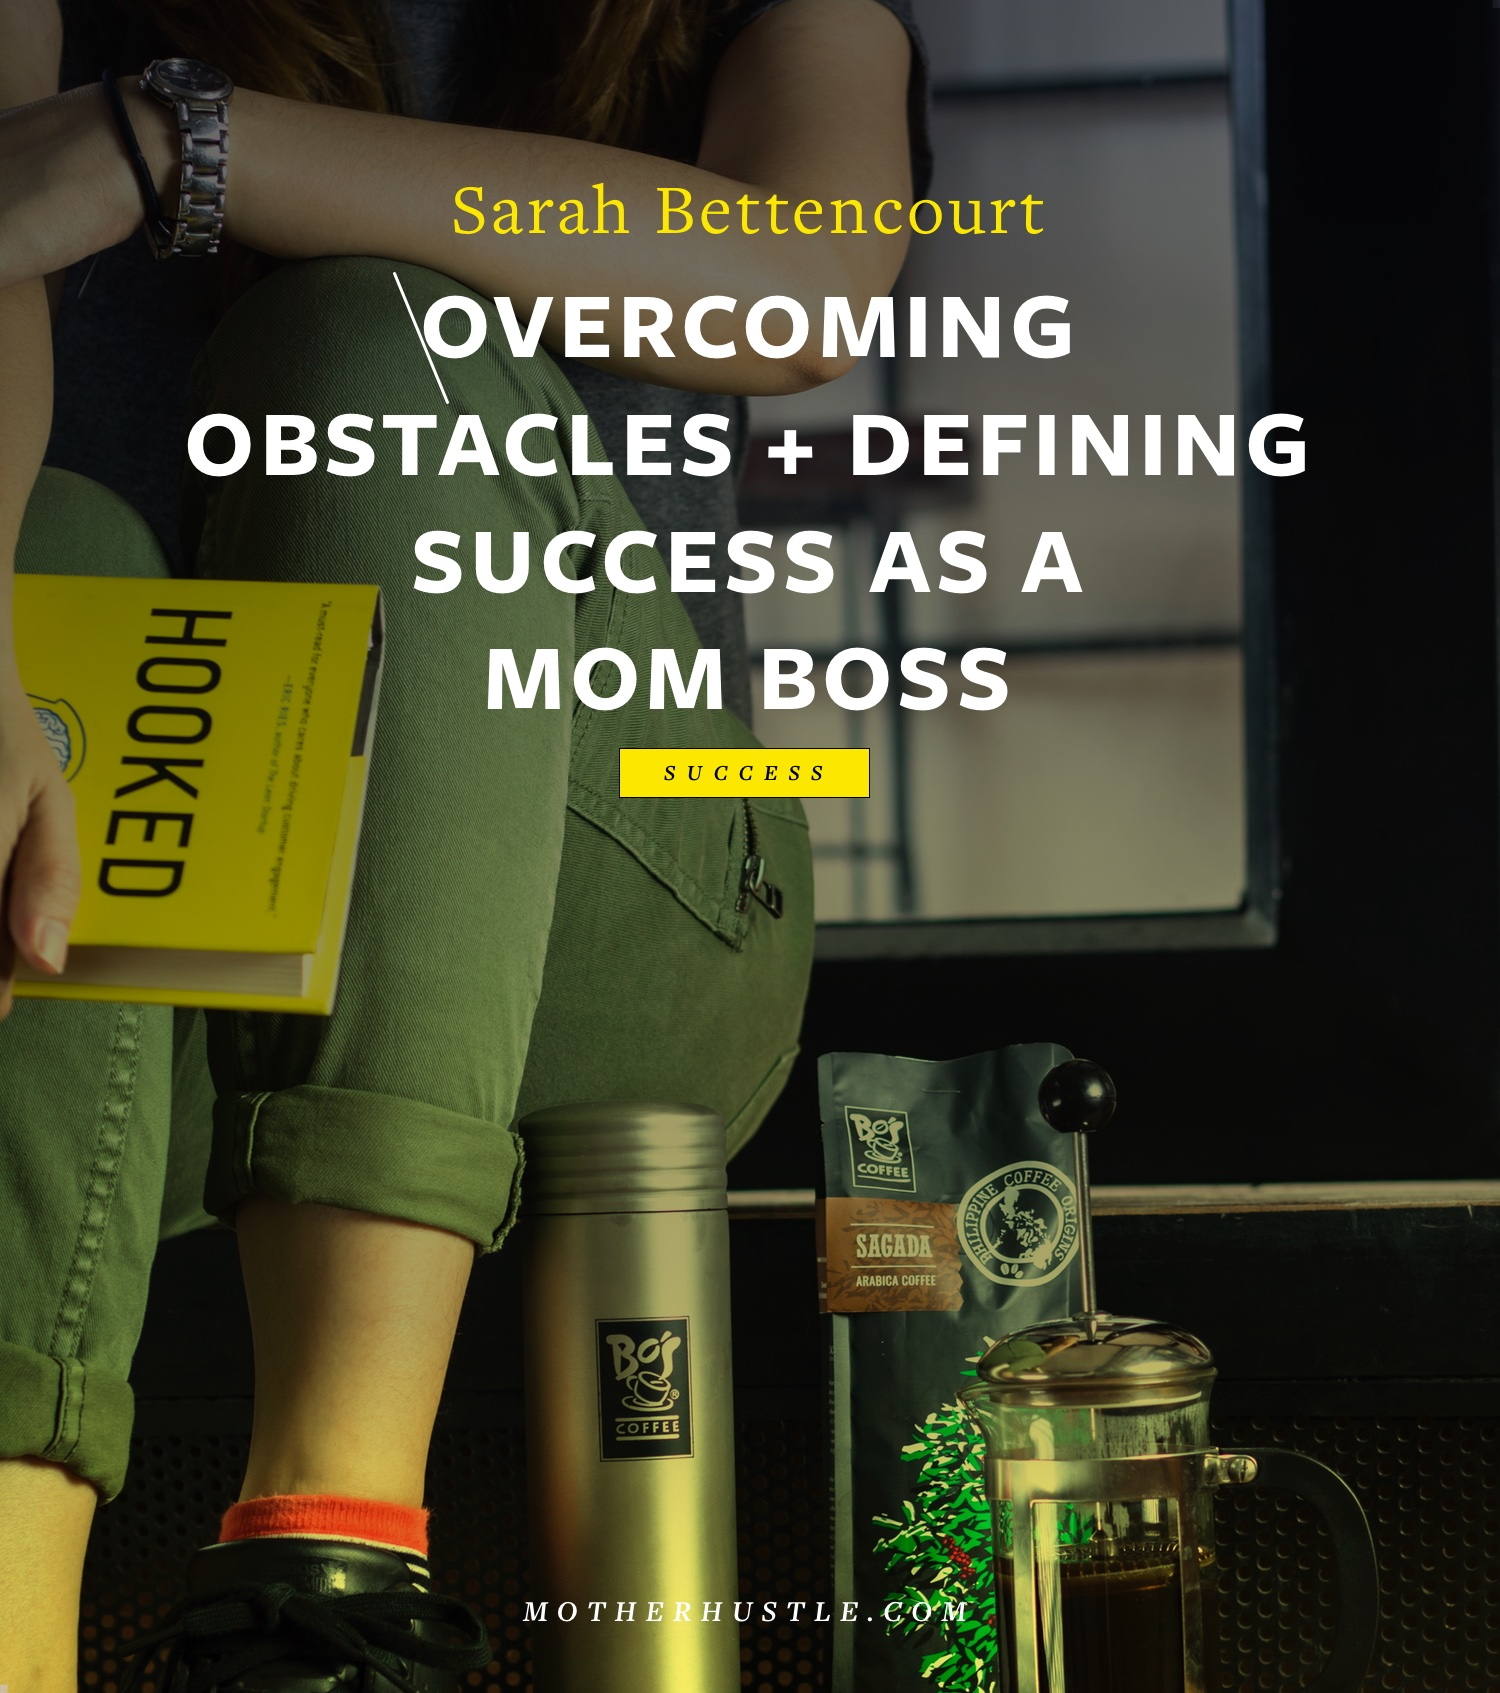 Overcoming Obstacles + Defining Success As a Mom Boss - by Sarah Bettencourt for MotherHustle